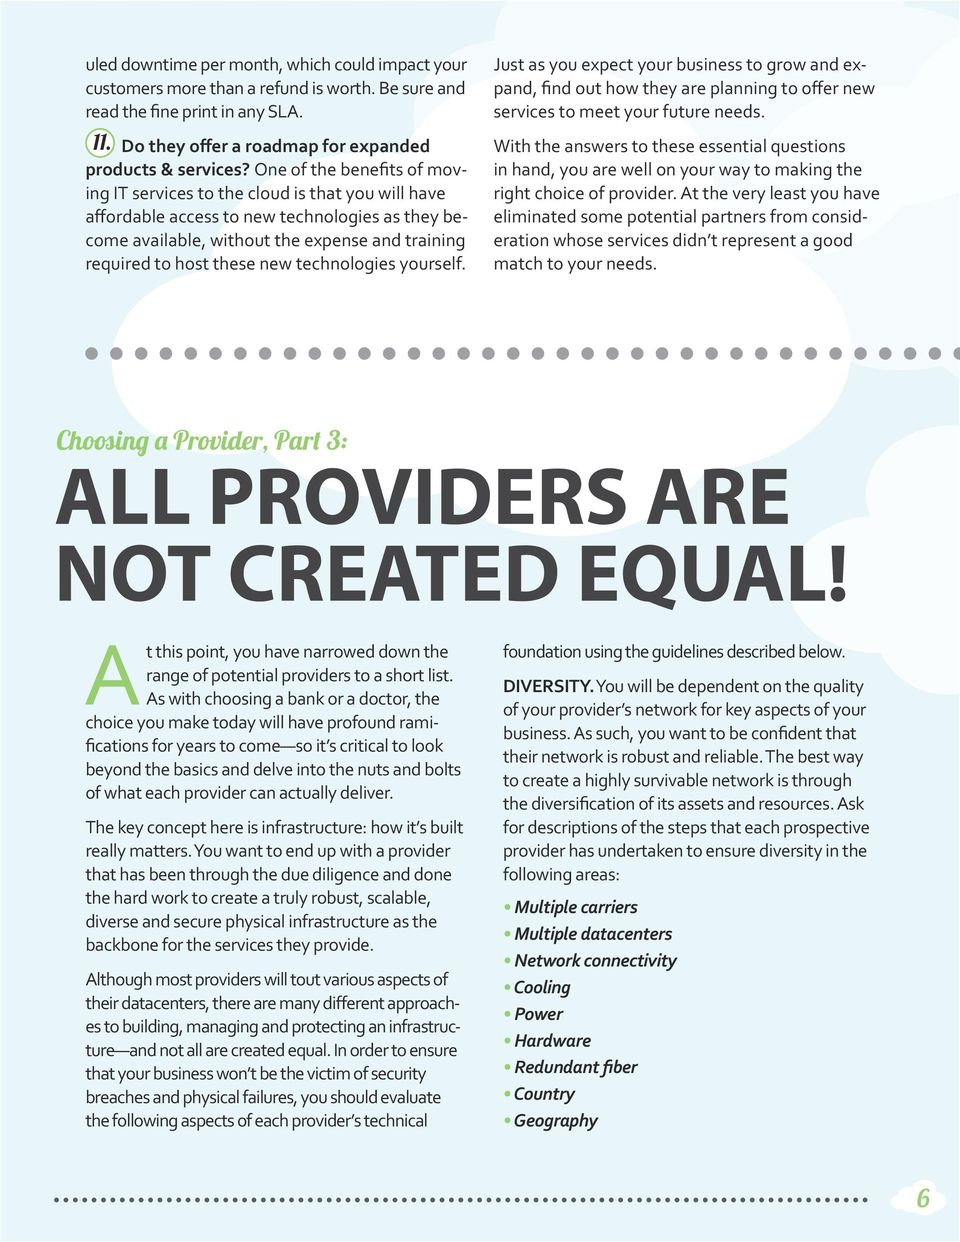 new technologies yourself. Just as you expect your business to grow and expand, find out how they are planning to offer new services to meet your future needs.